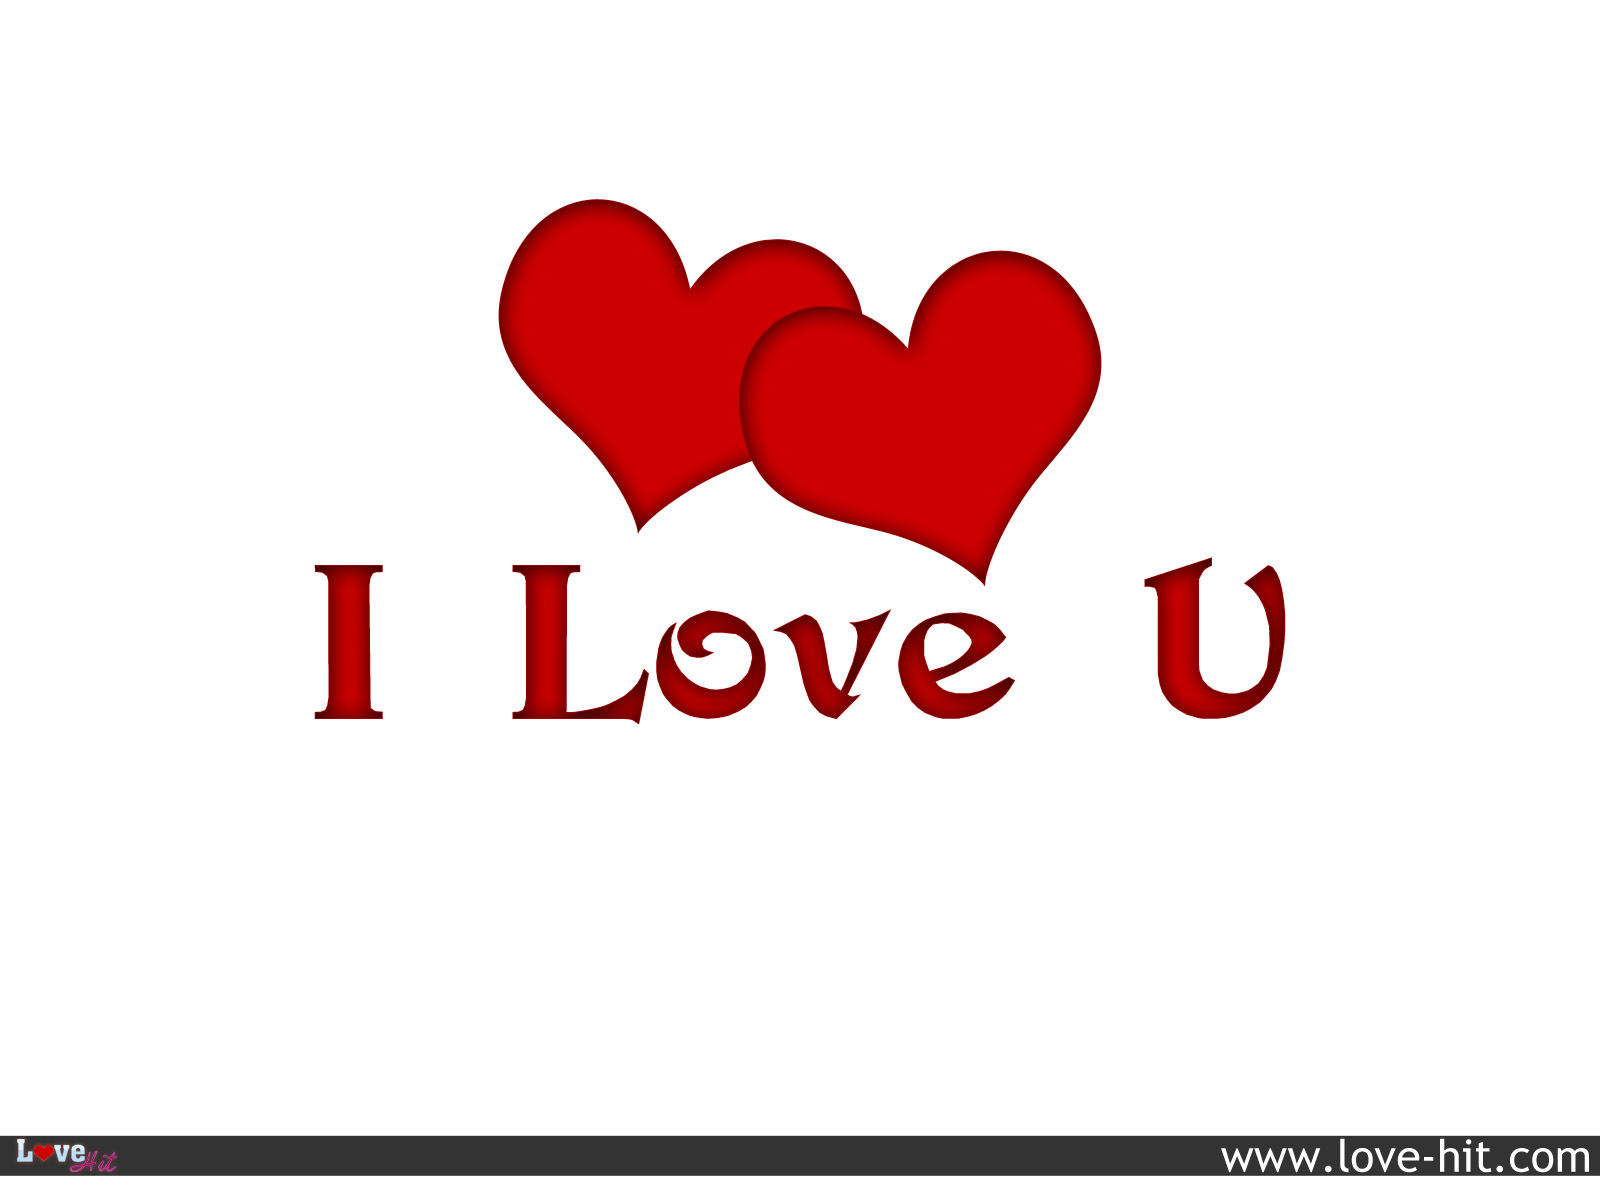 Cute Wallpapers Of Love Hearts I Love You Red Hearts